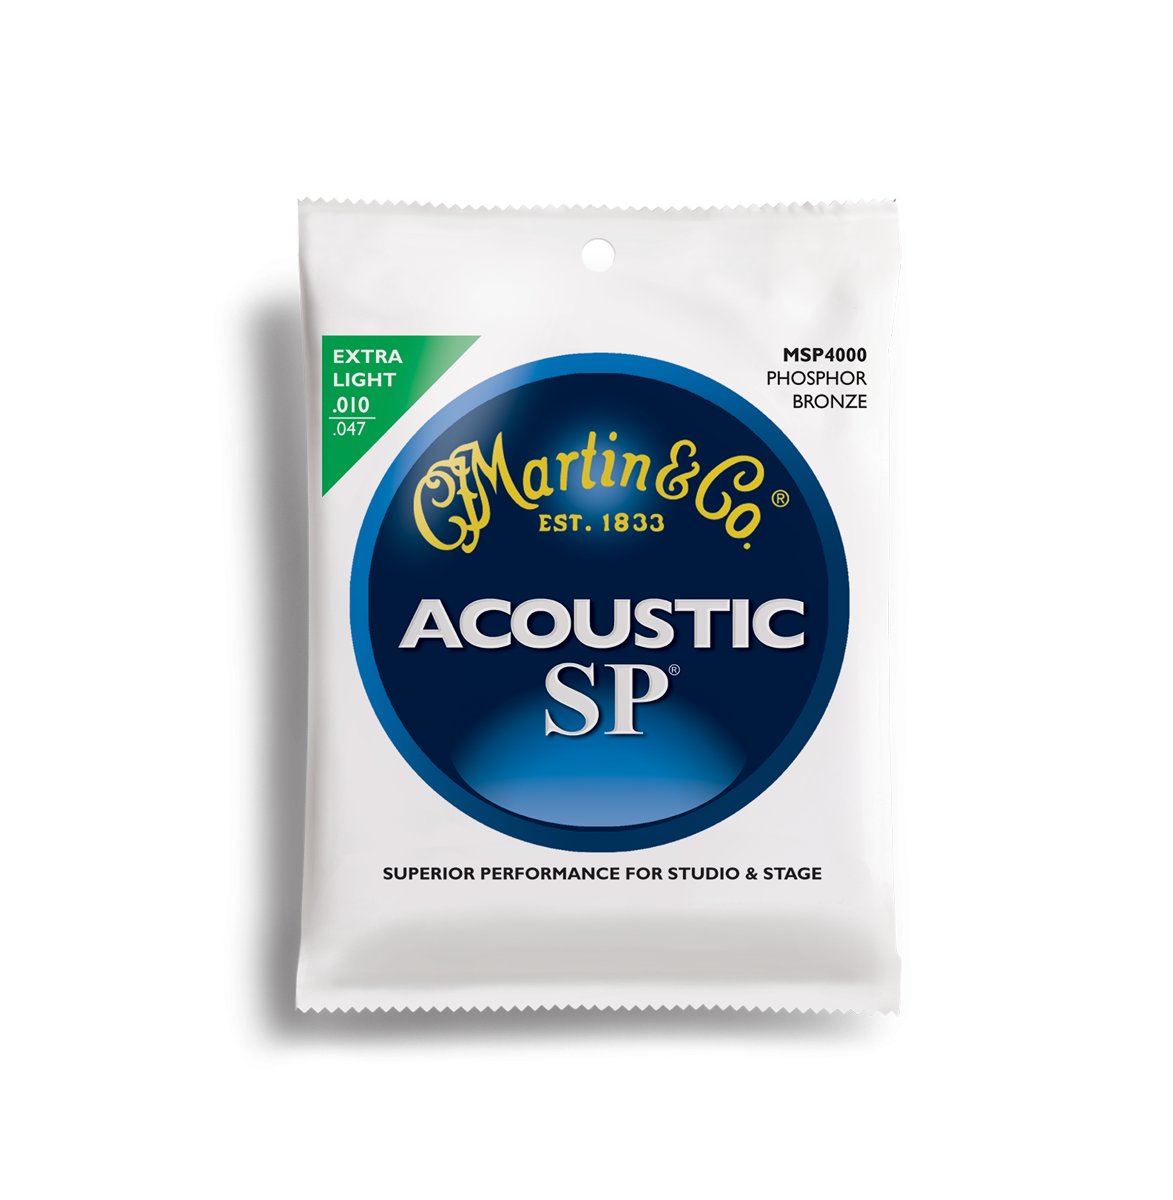 Martin SP Phosphor Bronze MSP4000 Acoustic Guitar Strings, Extra Light, 10-47